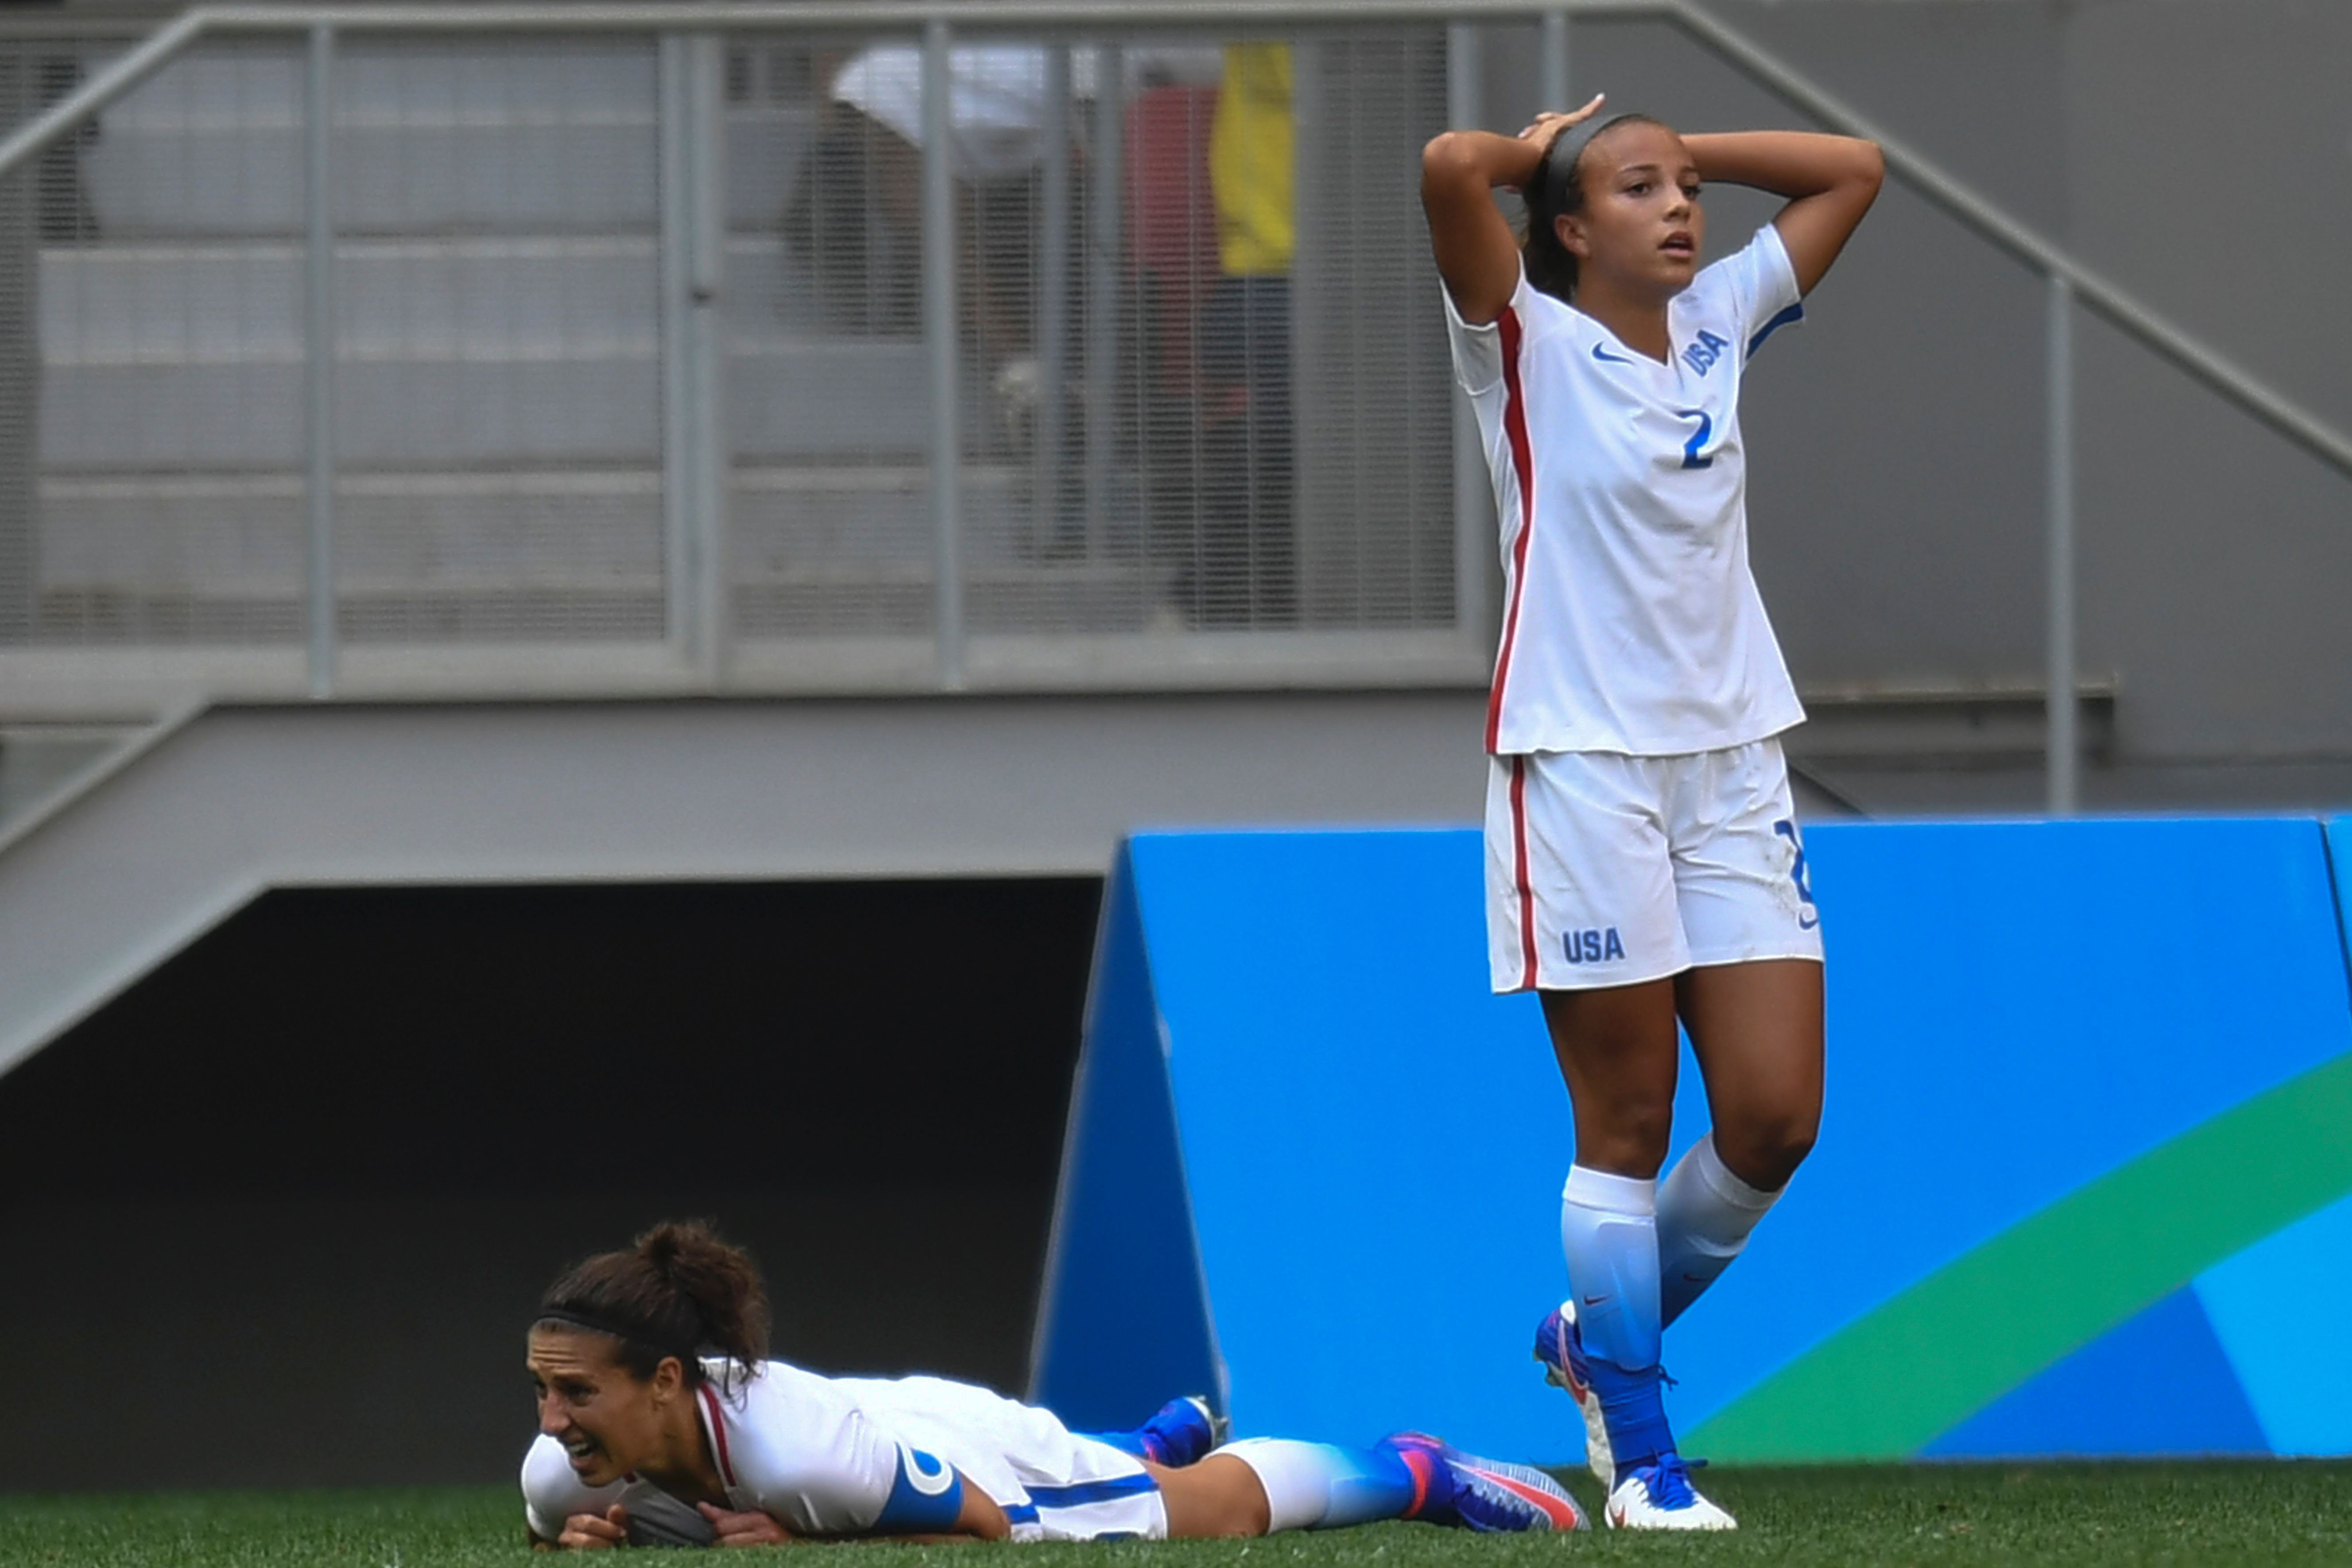 US' forward Mallory Pugh (R)and midfield Carli Lloyd react during the Rio 2016 Olympic Games Quarter-finals women's football match USA vs Sweden, at the Mane Garrincha Stadium in Brasilia on August 12, 2016. / AFP / EVARISTO SA (Photo credit should read EVARISTO SA/AFP/Getty Images)